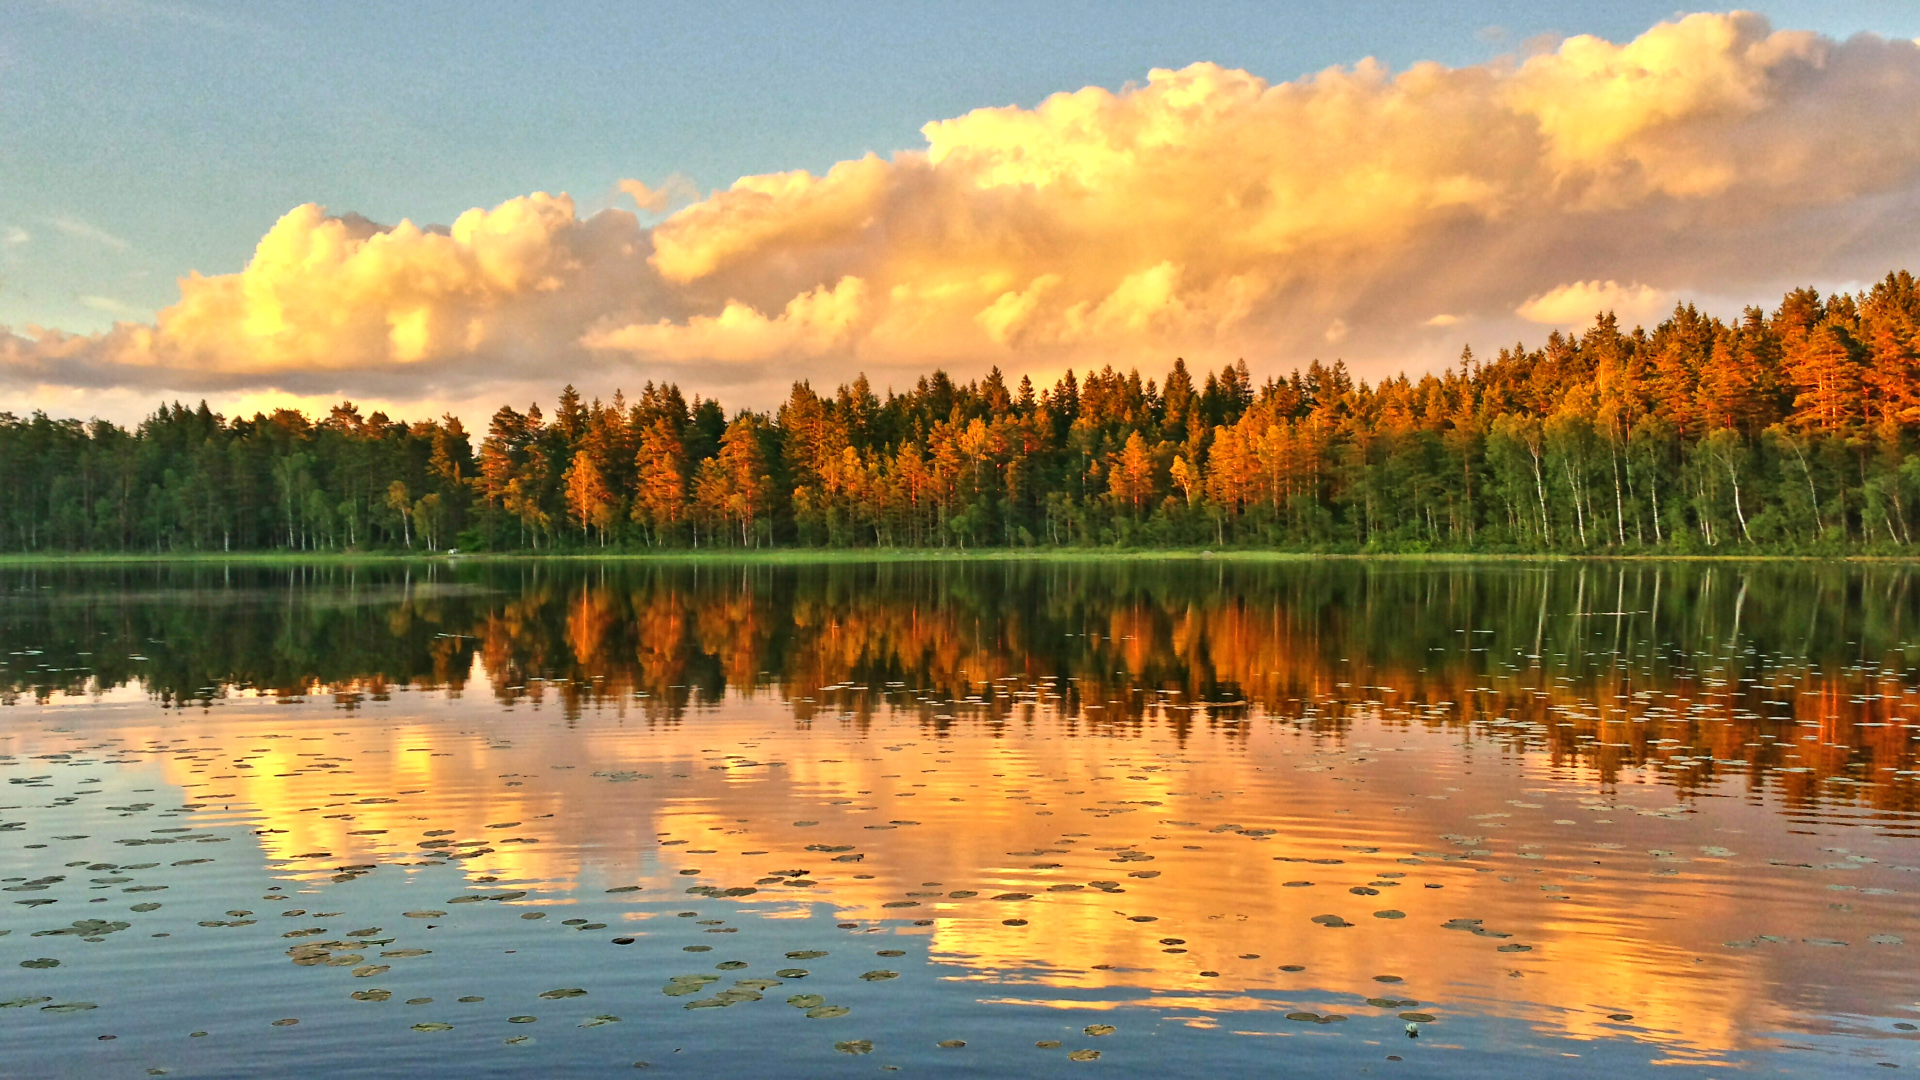 Beautiful Autumn Scene Photography In Sweden Wallpapers